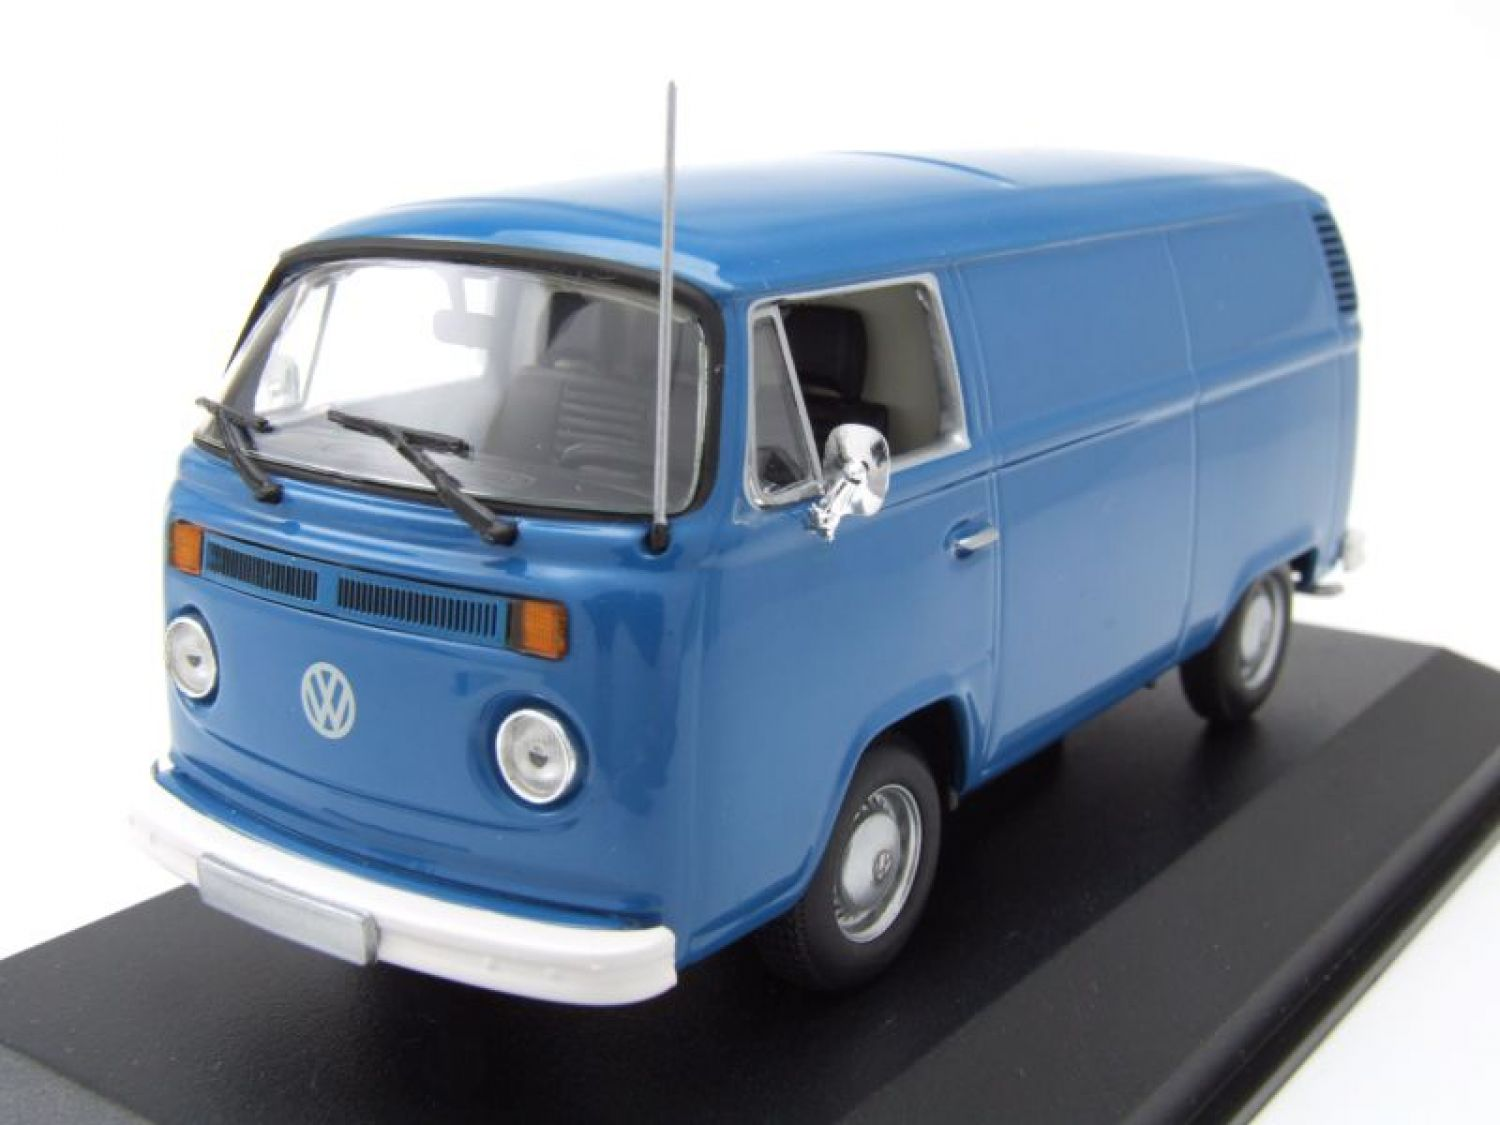 vw t2 b bus kastenwagen 1972 blau modellauto 1 43. Black Bedroom Furniture Sets. Home Design Ideas